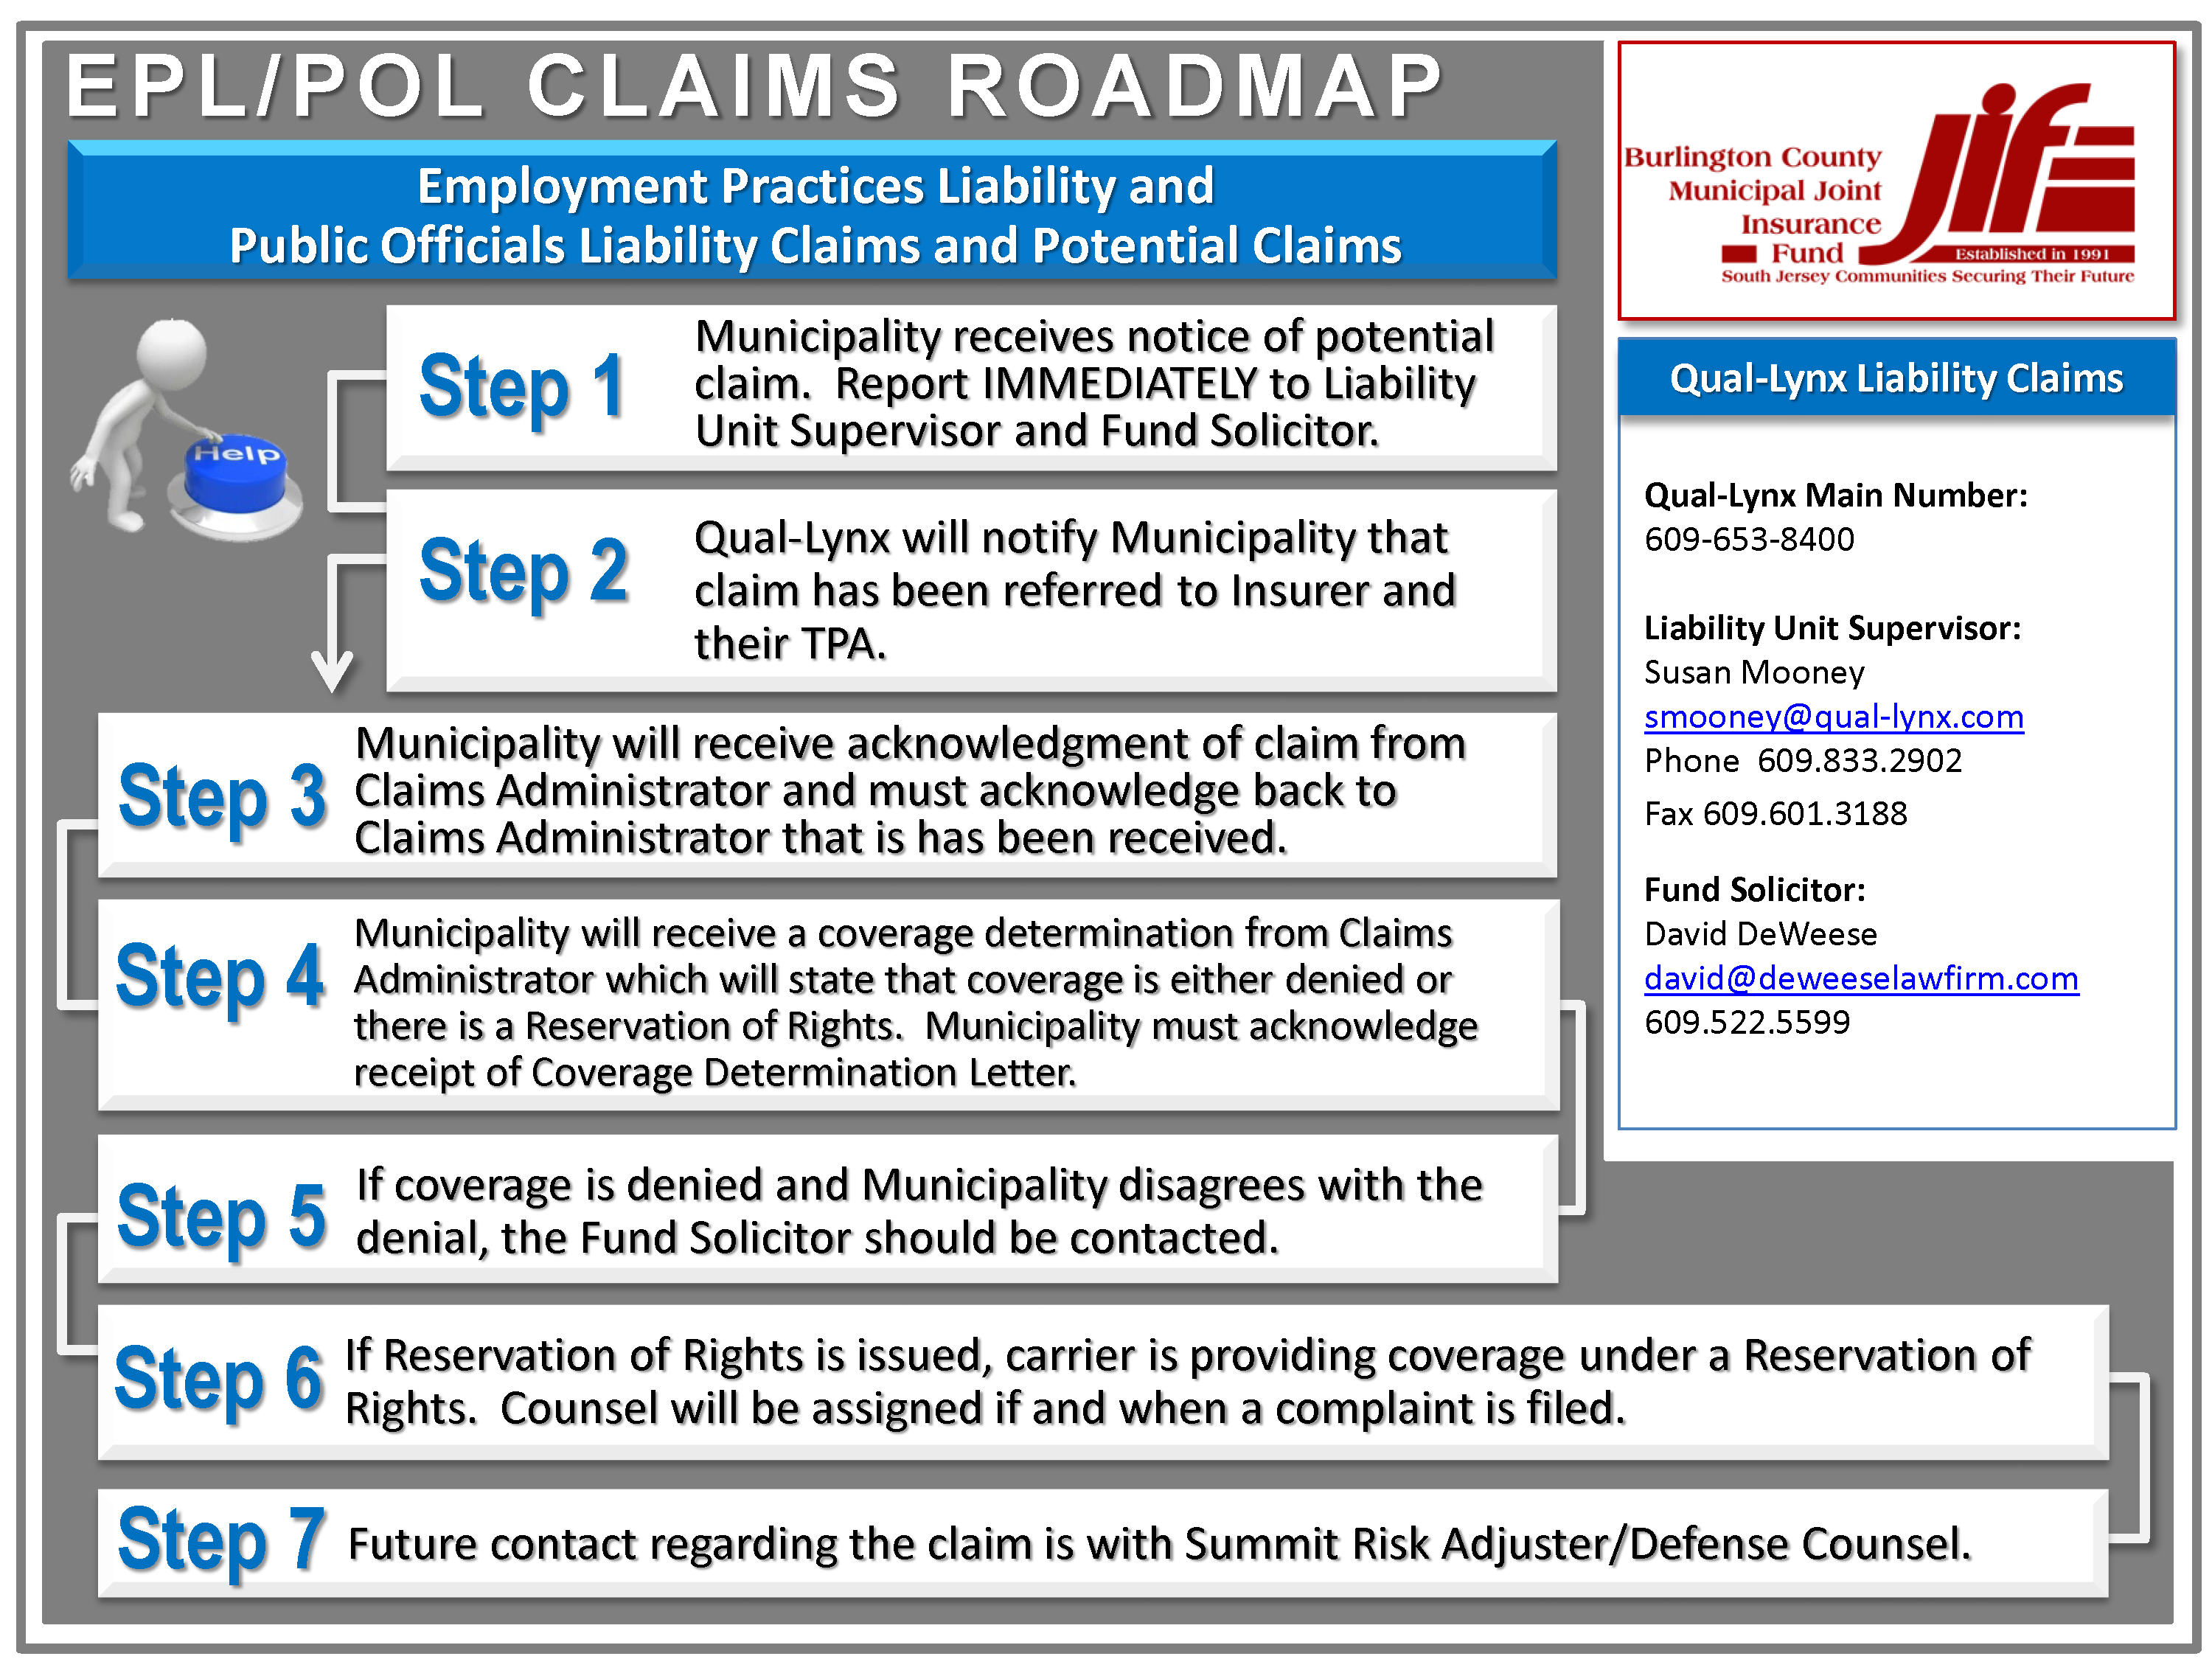 Employment Practices Liability Claims Roadmap